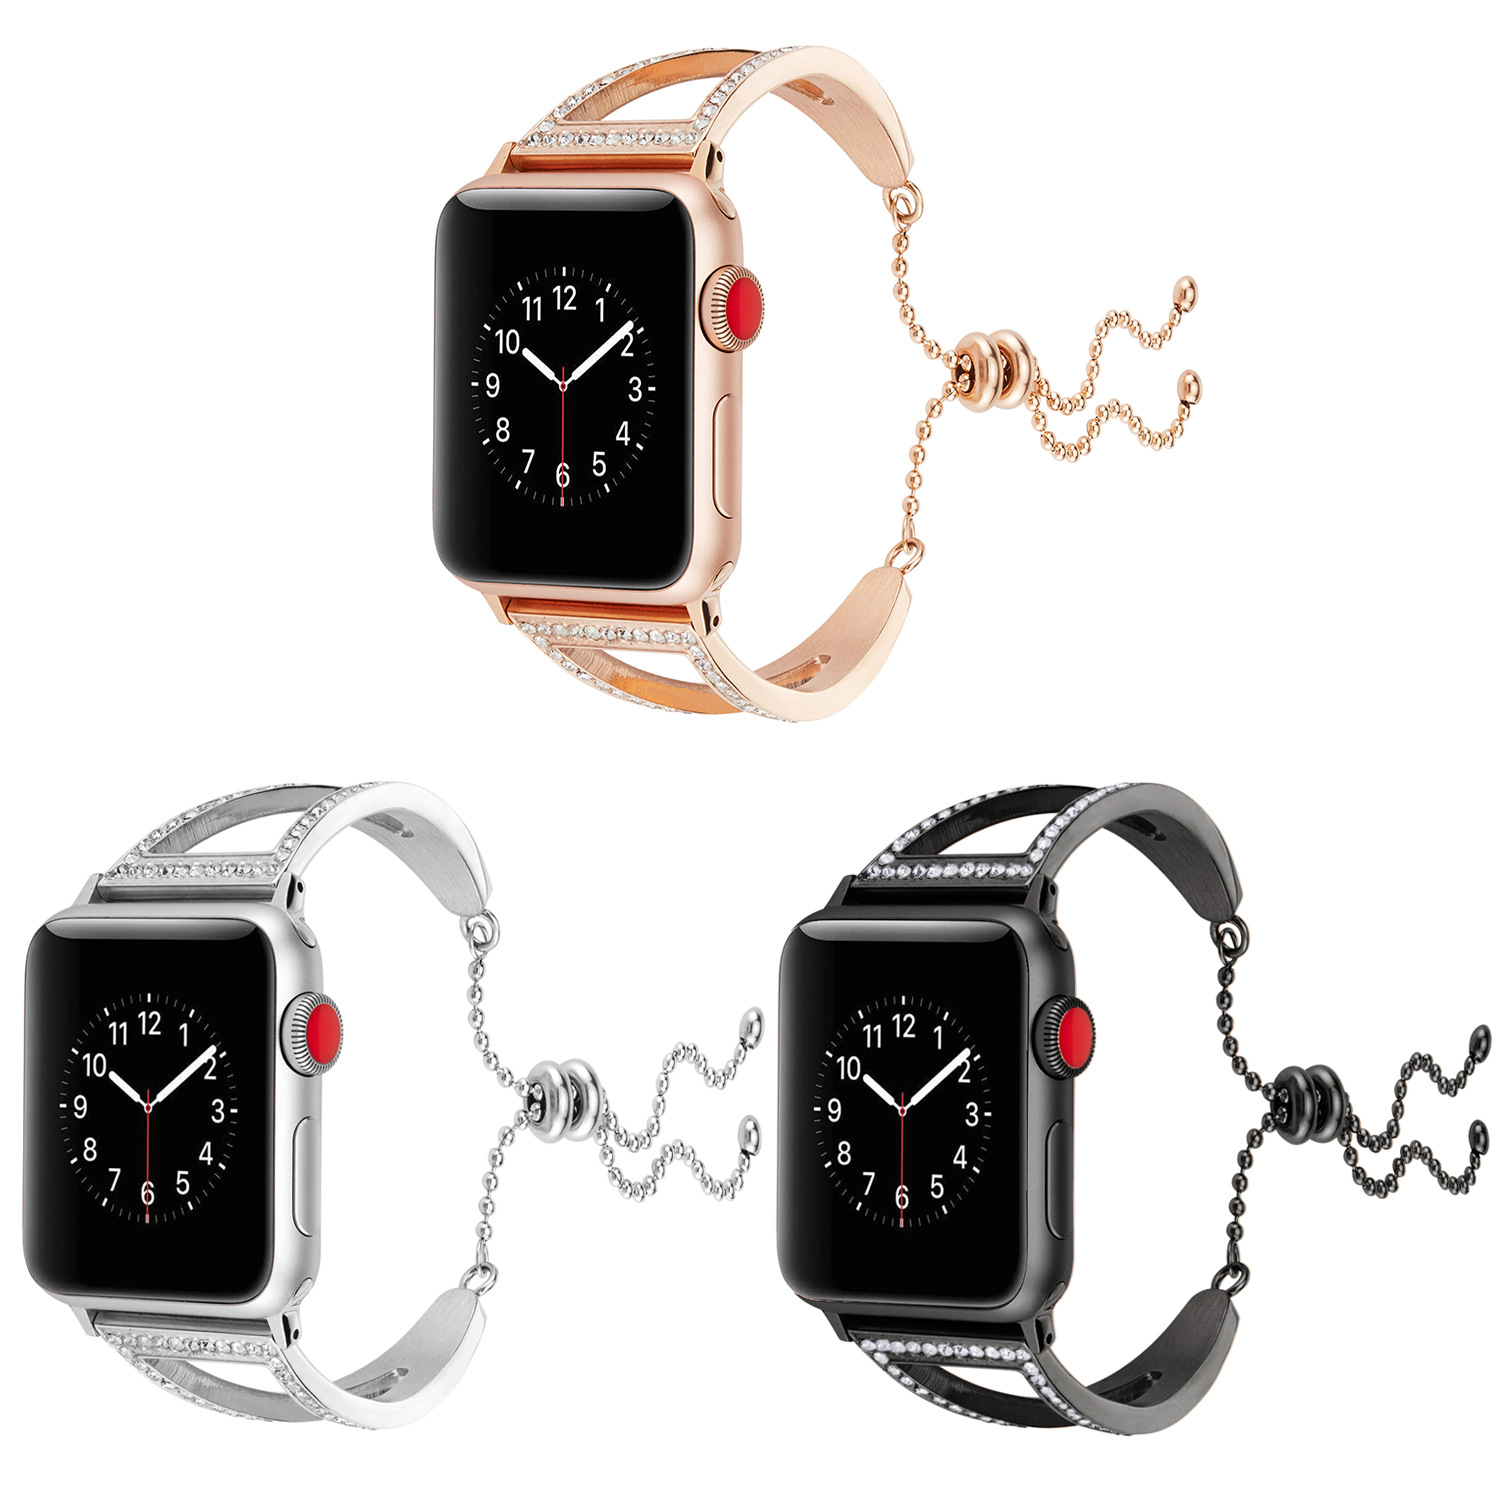 Suitable For Apple Watch Hollow Out Bracelet Diamond Set Watch Strap IWatch43 S Metal Stainless Steel Retractable Watch Bracelet